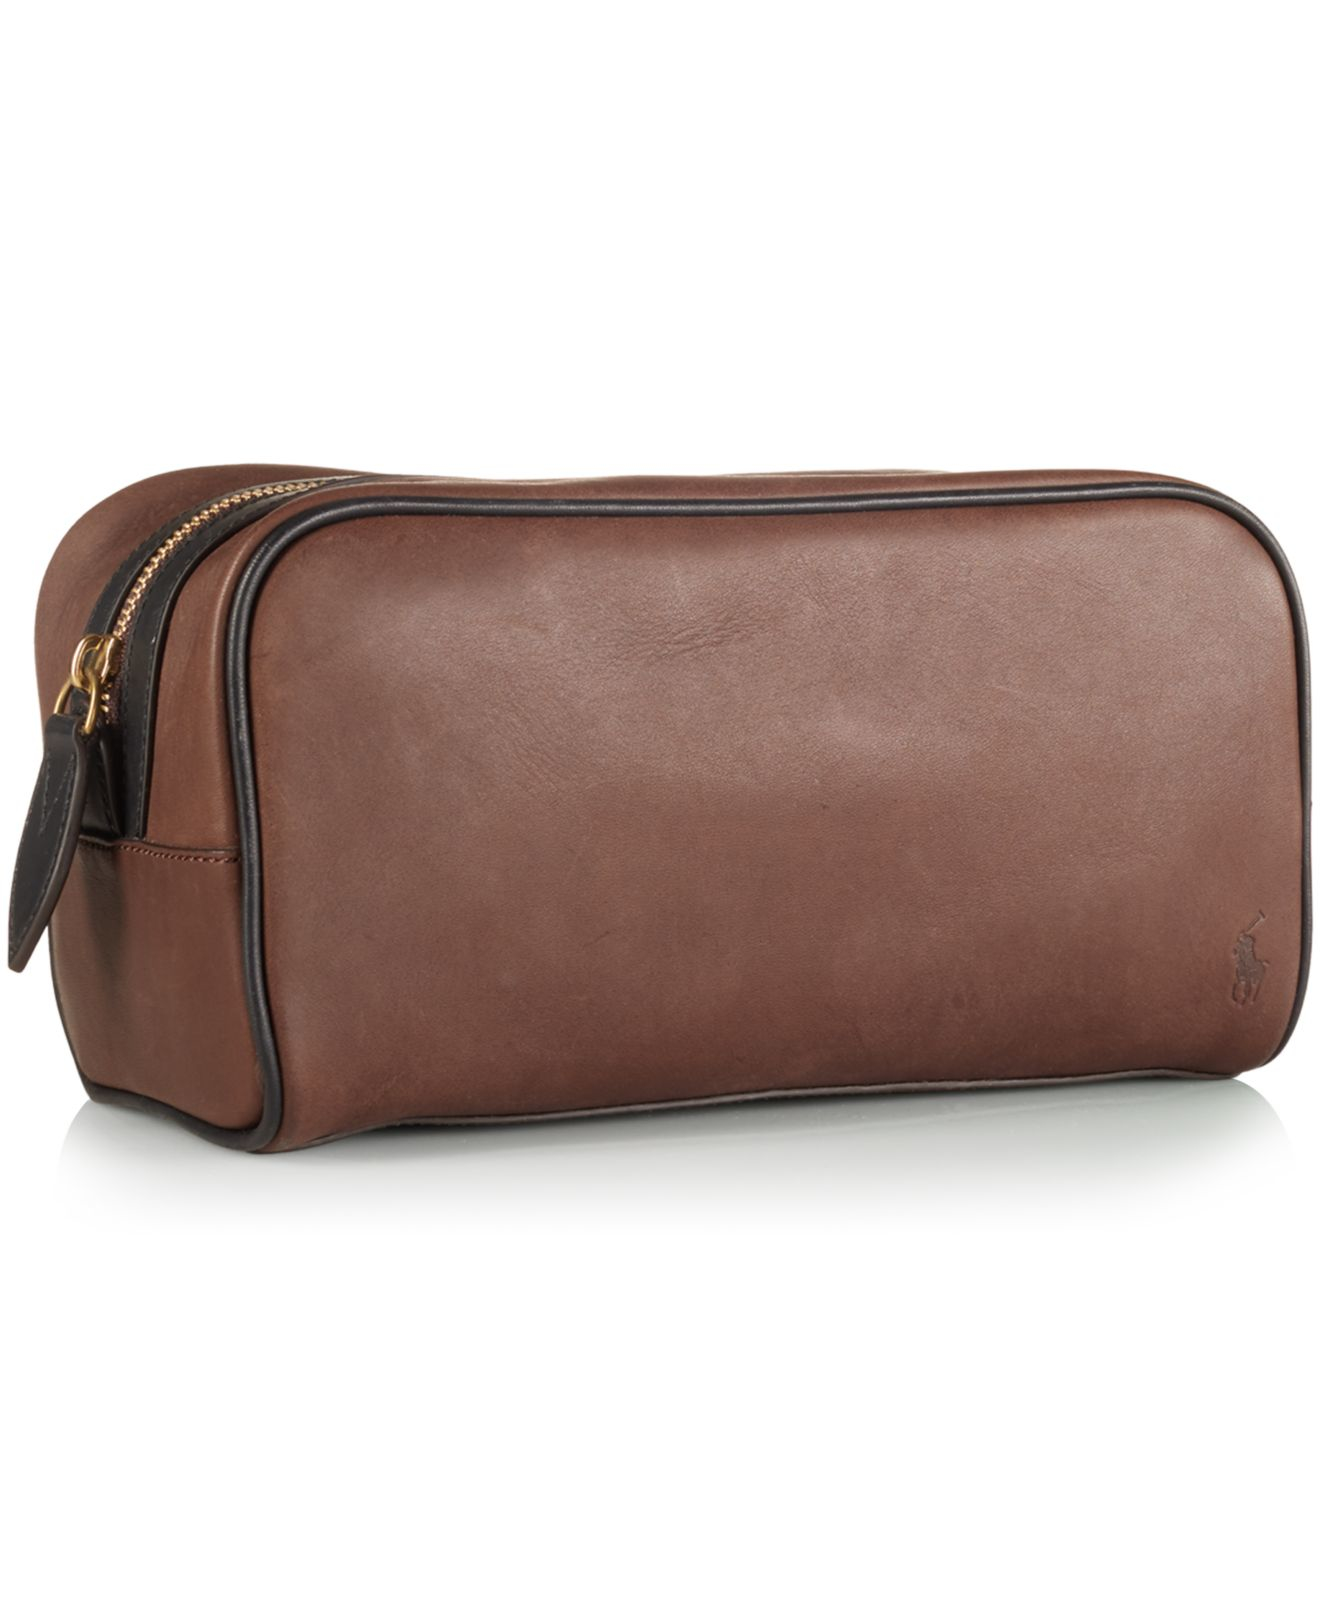 3fb21f9612 Lyst - Polo Ralph Lauren Two-toned Leather Shaving Bag in Brown for Men